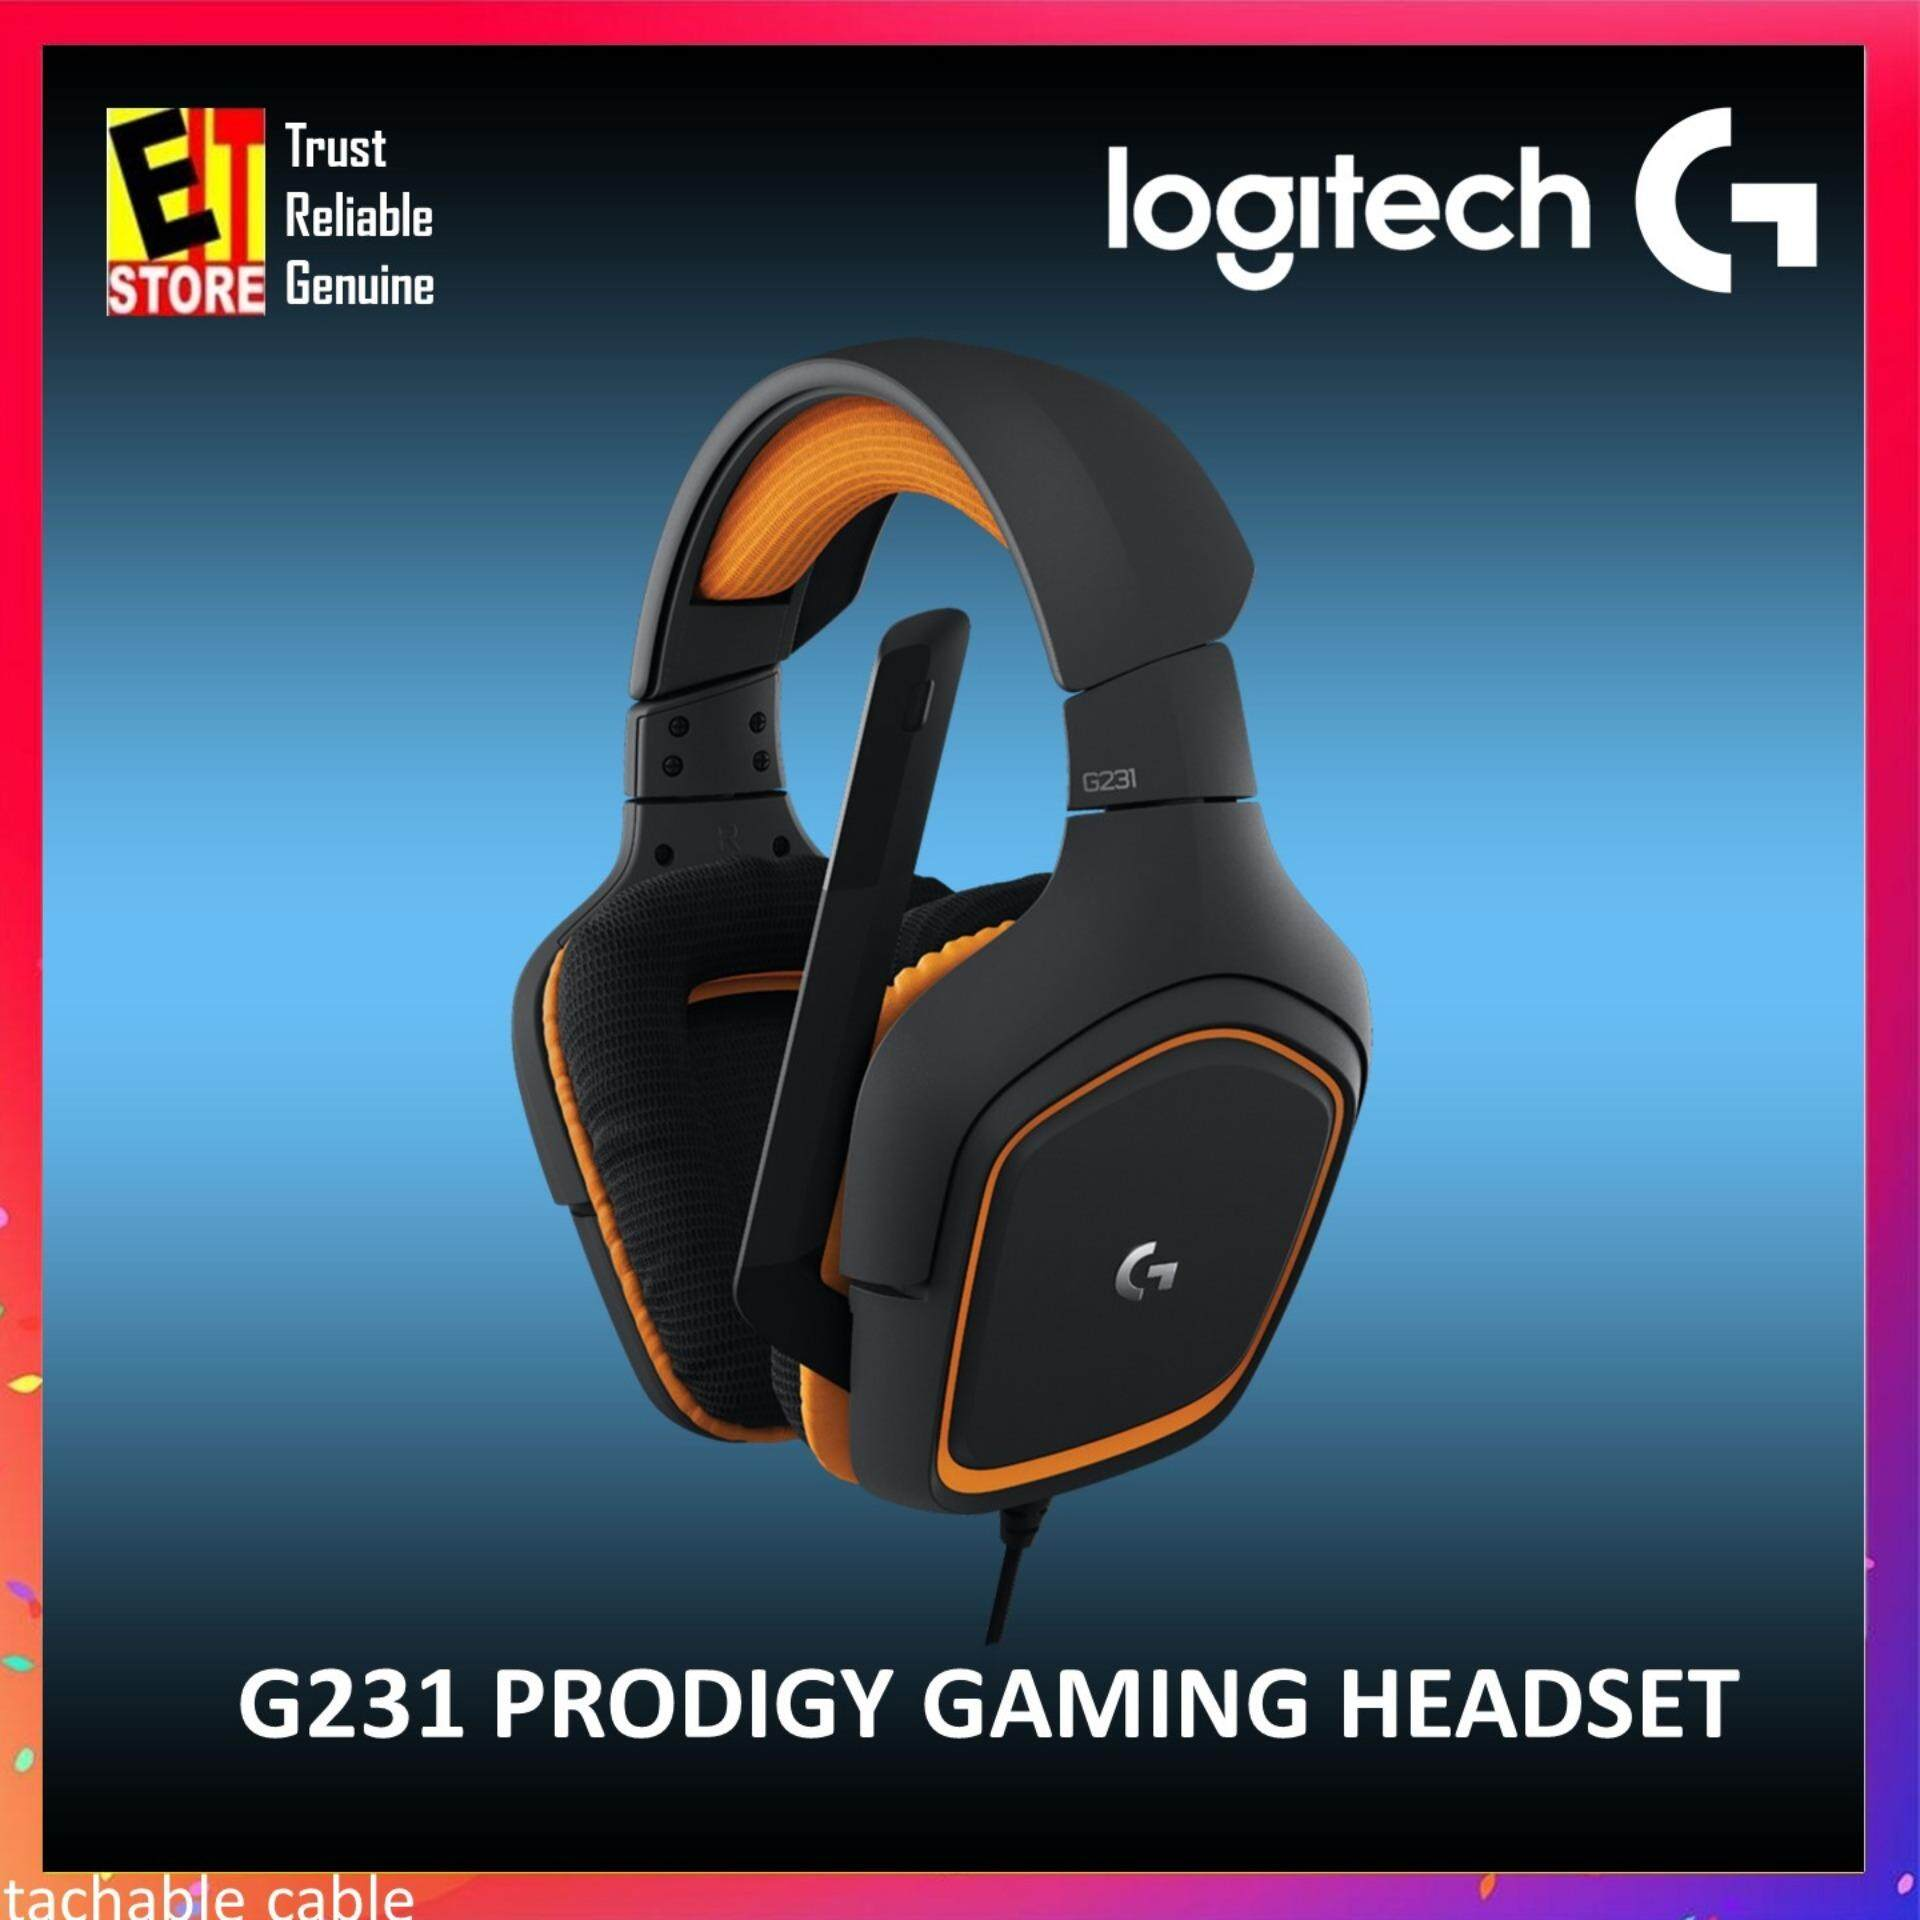 Logitech G231 Stereo Gaming Headset By Eit Store.